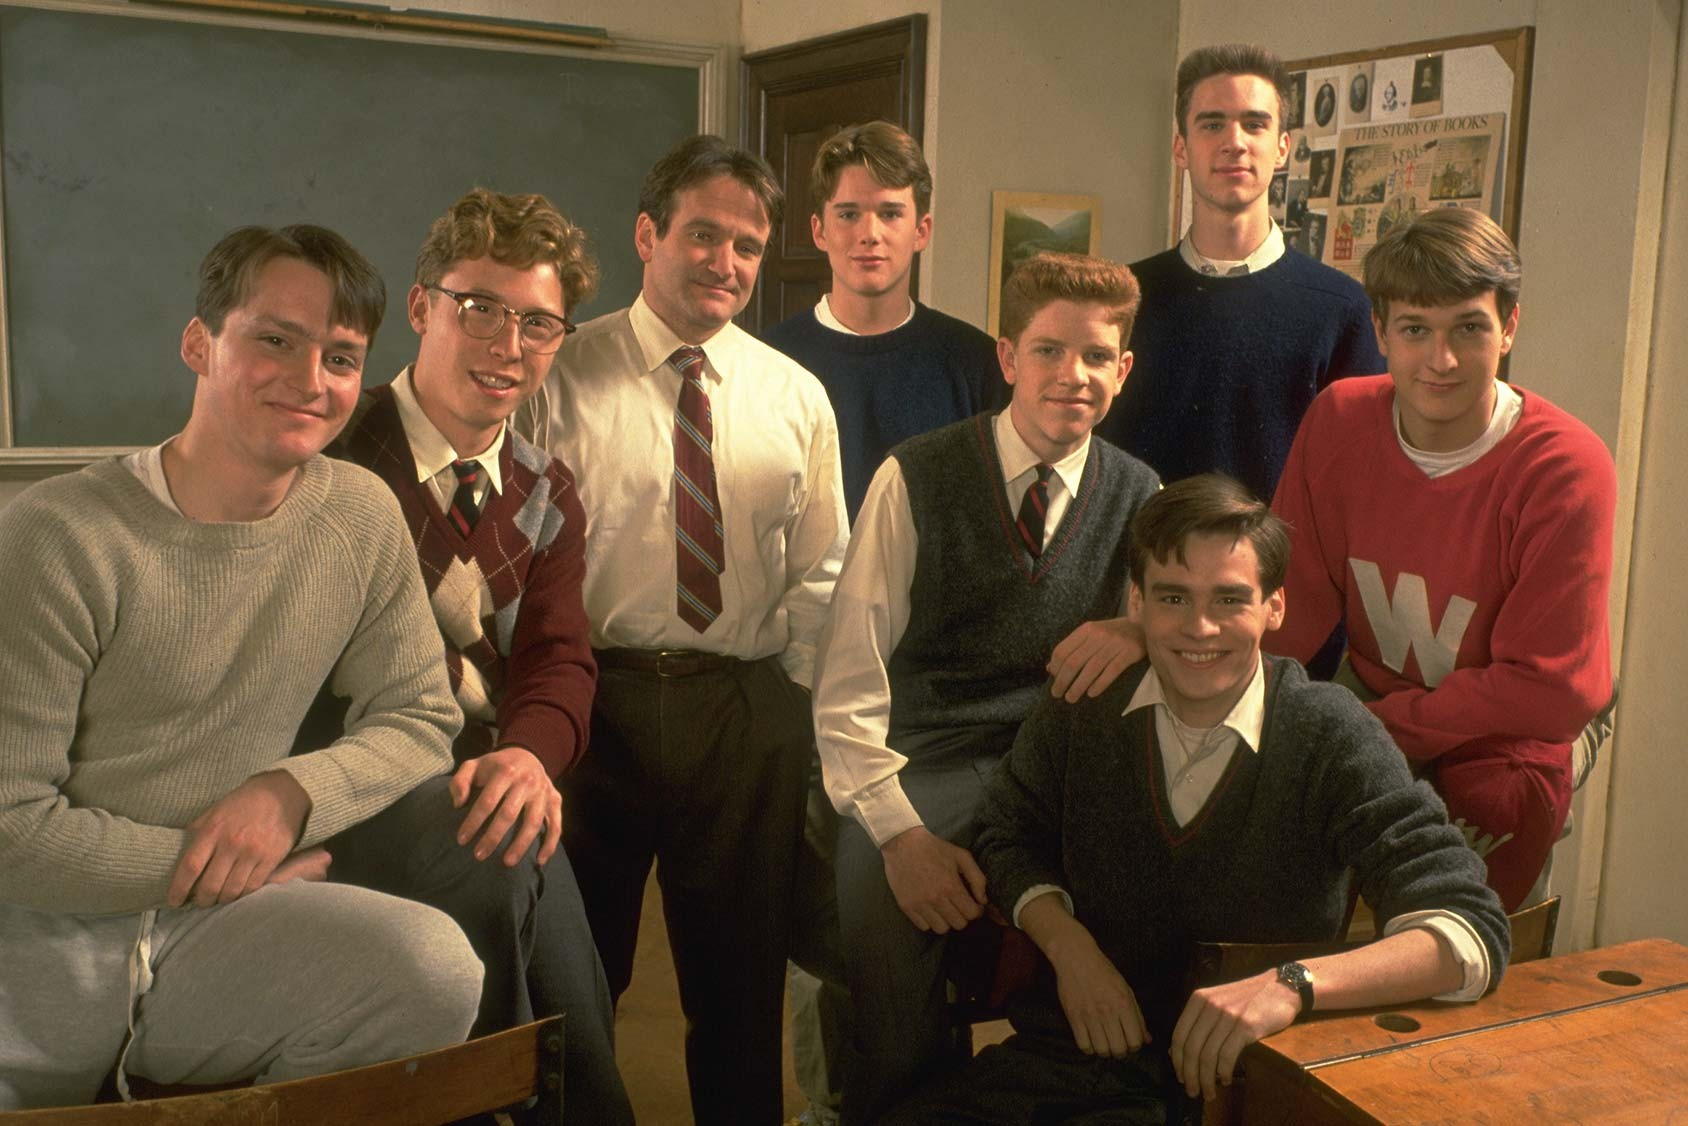 a comparison of mr keating and jesus in the film dead poets society Realism and romanticism in dead poets society john keating as a romantic character as the jewish scribes and pharisees wanted jesus dead so.